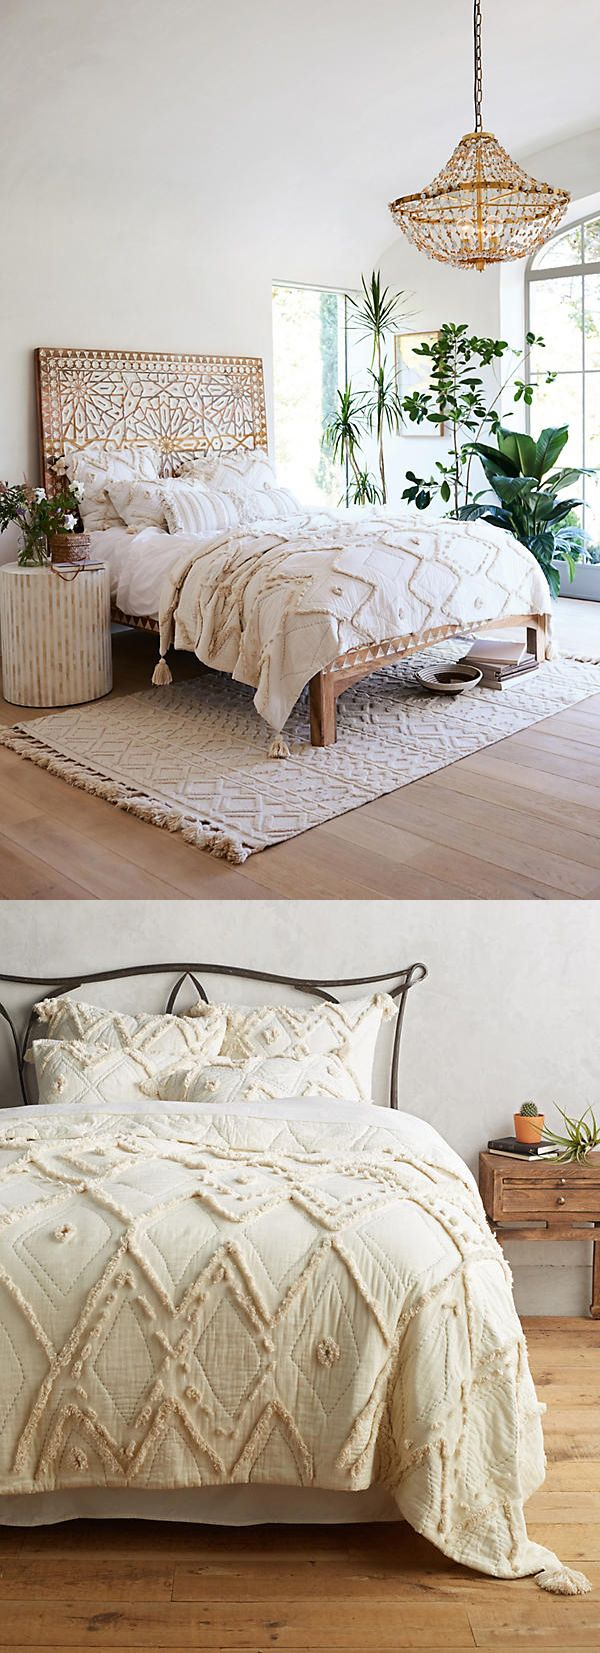 Best 25+ Anthropologie bedding ideas on Pinterest ...